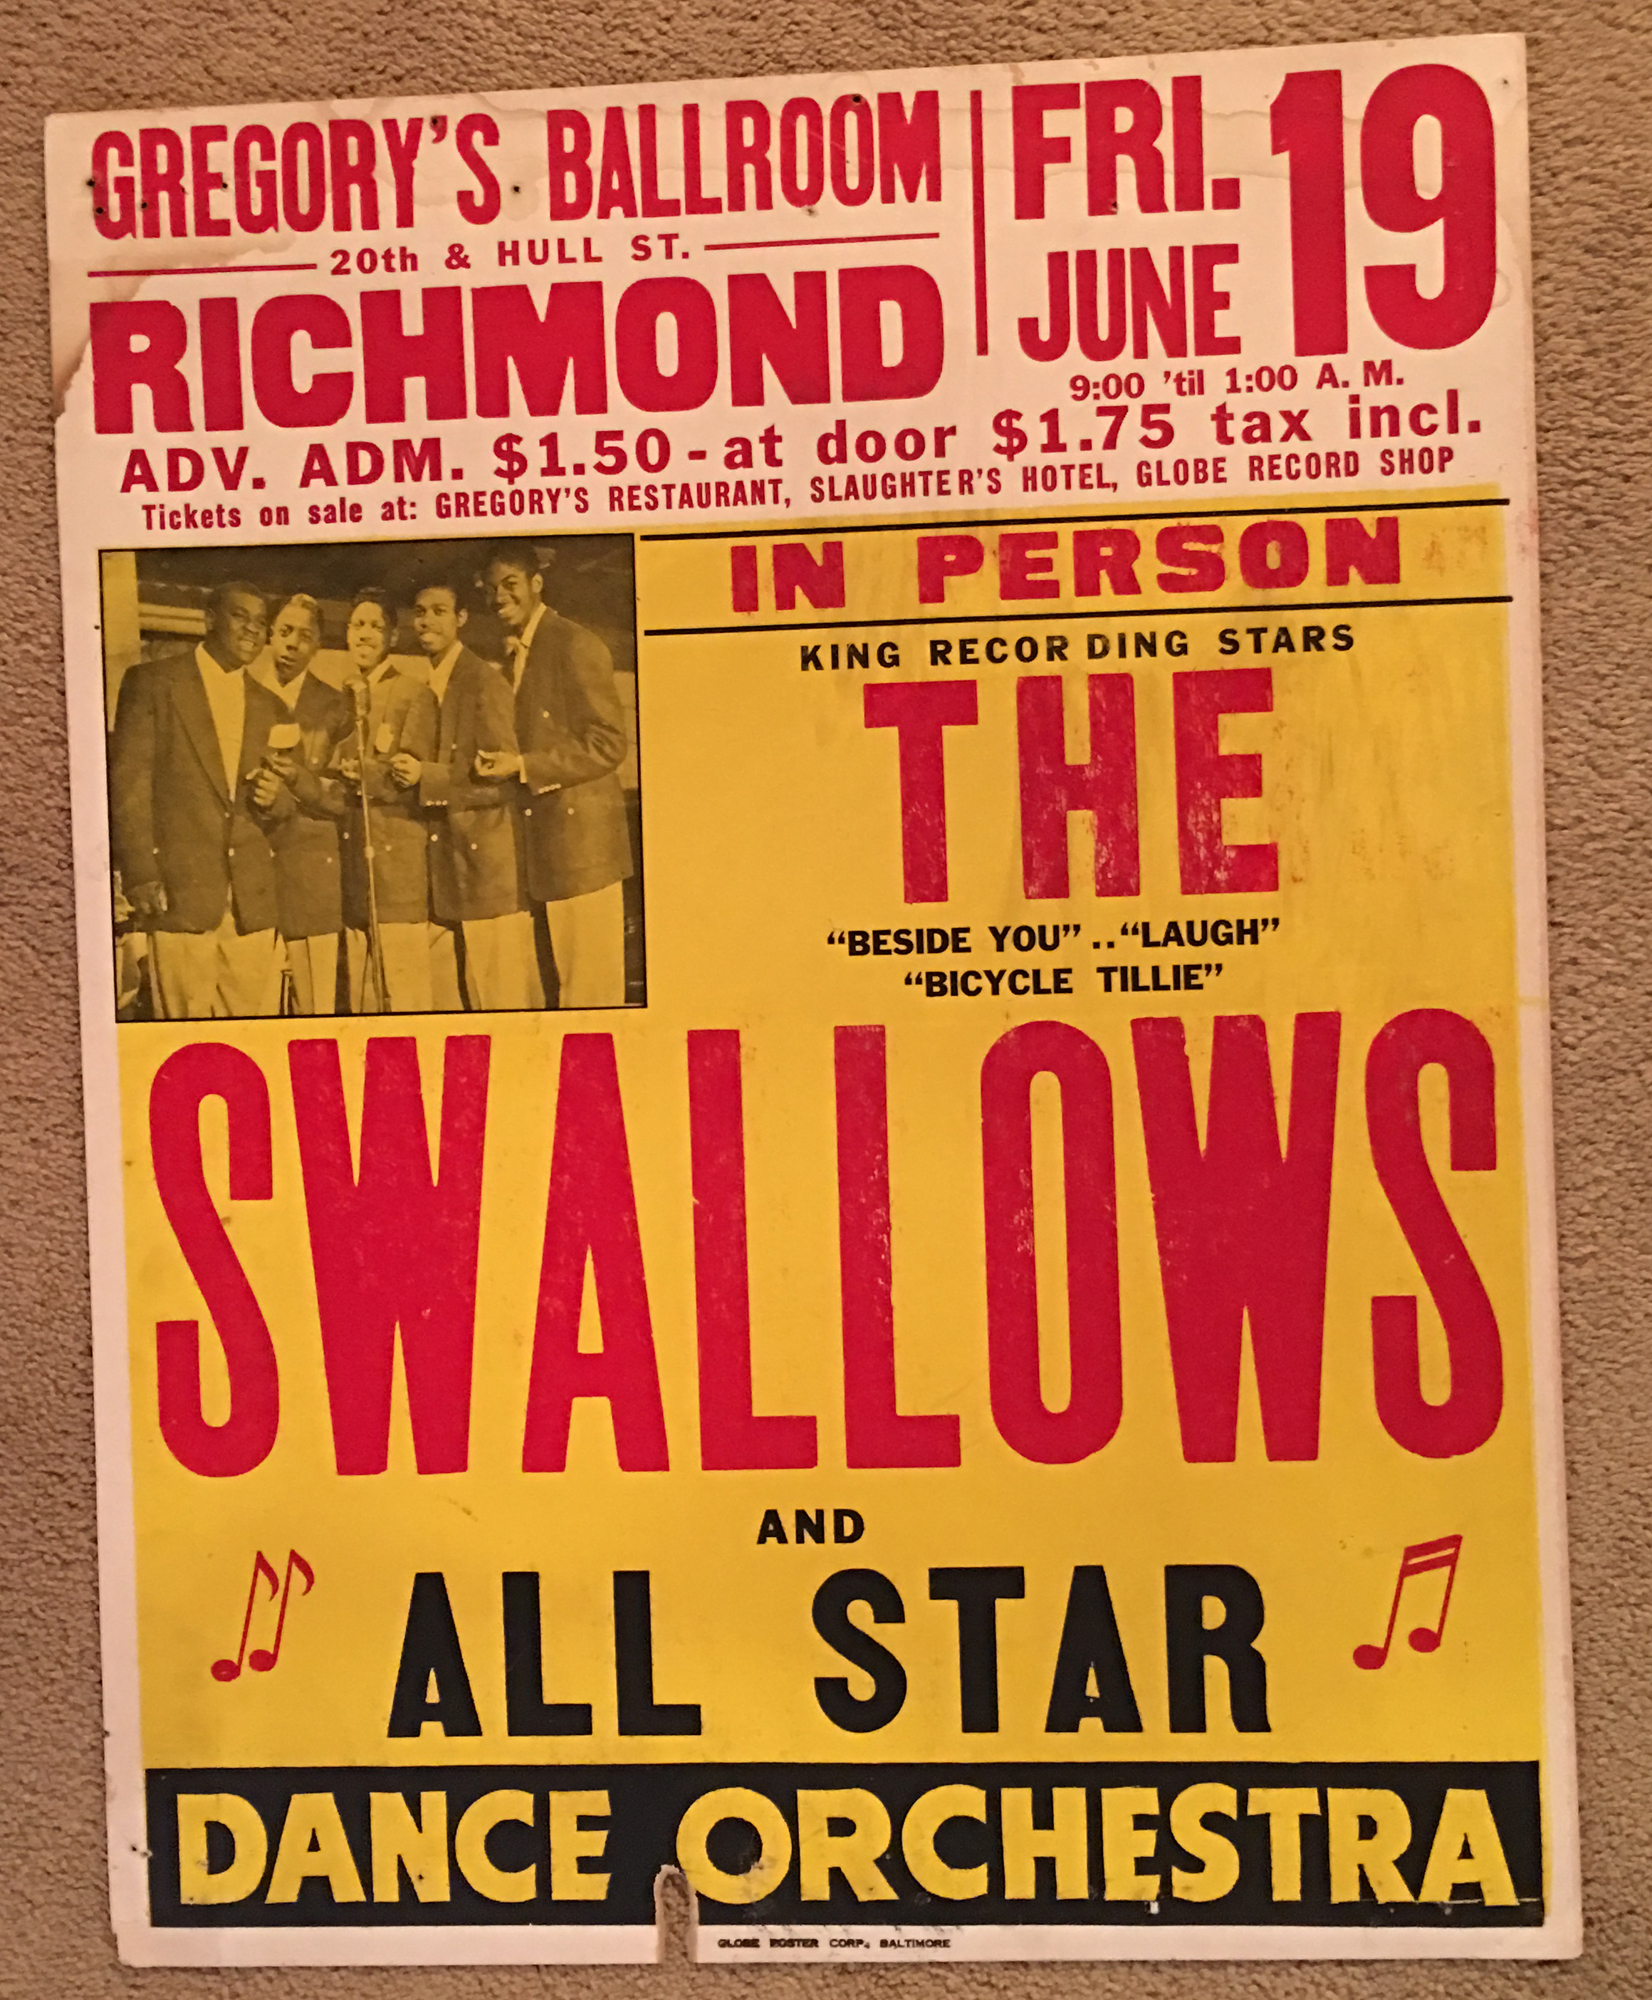 Image for The Swallows, 1953, Boxing-Style Jumbo Globe Concert Poster, Richmond Virginia